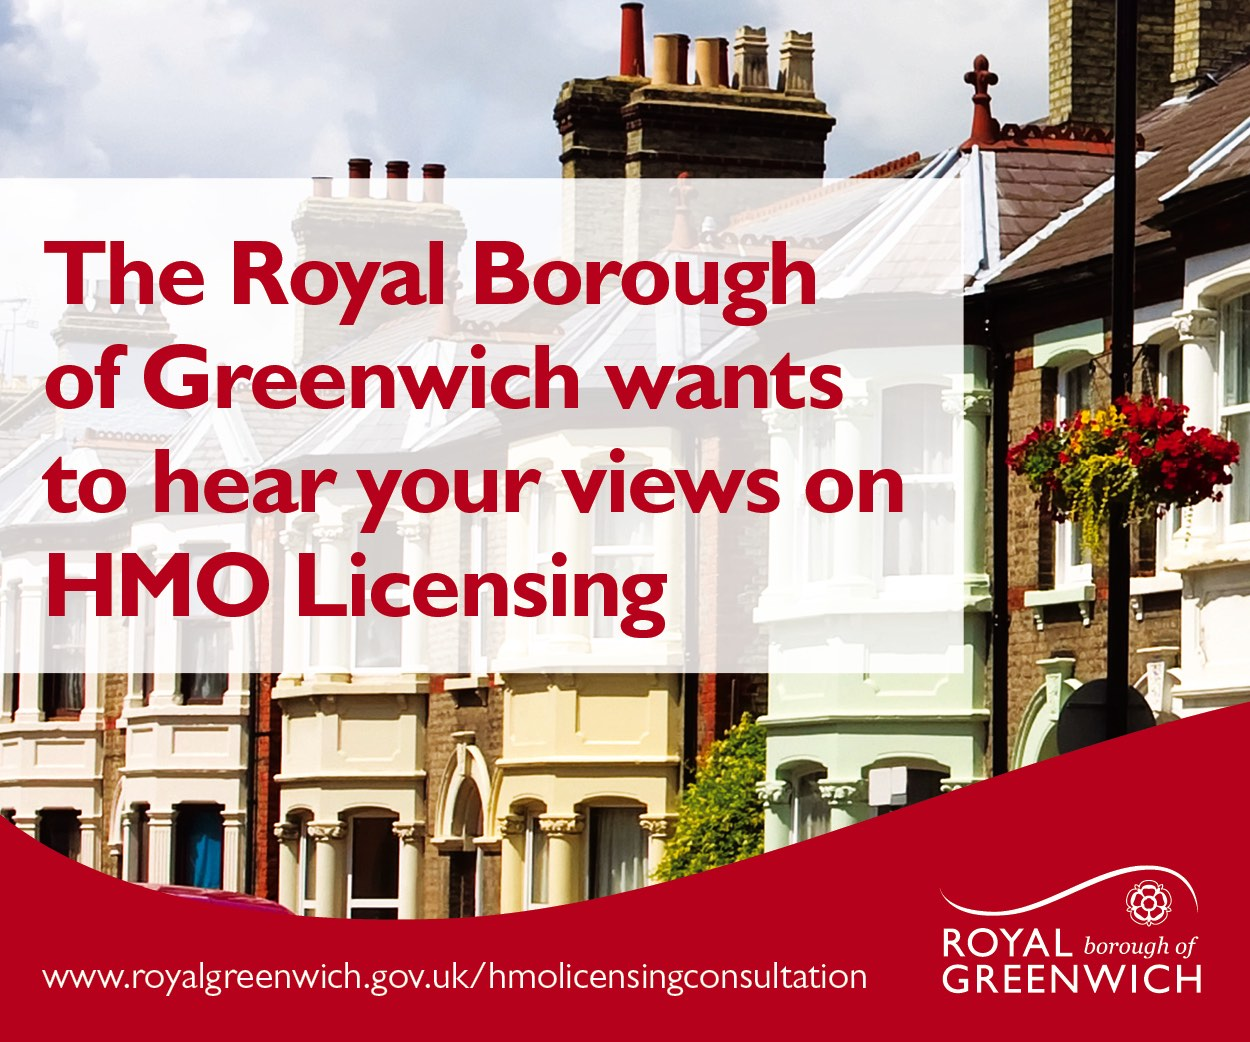 Greenwich HMO Licensing consultation